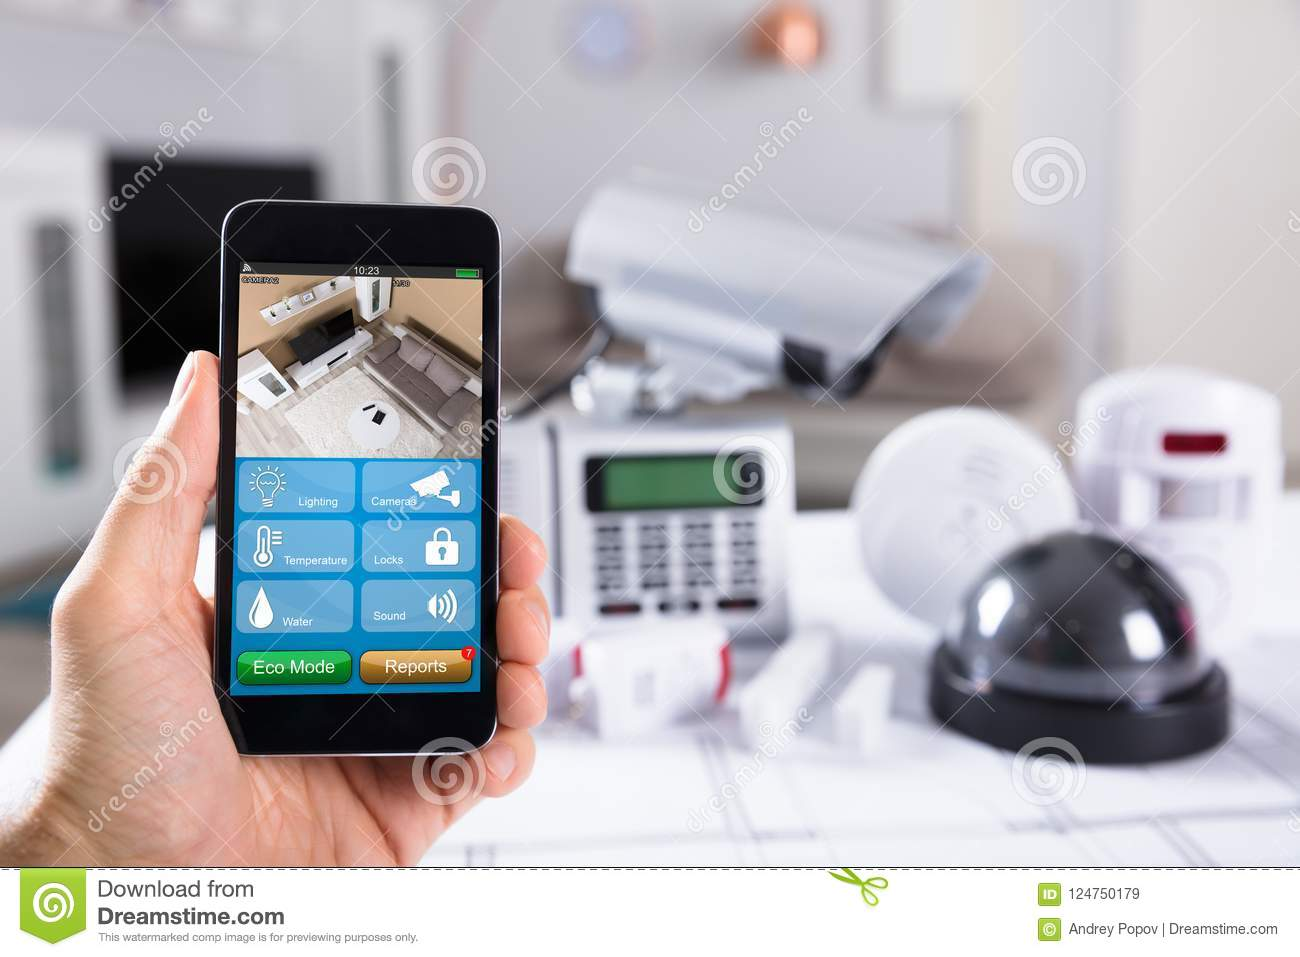 Person Holding Mobile Phone With CCTV Camera Footage On